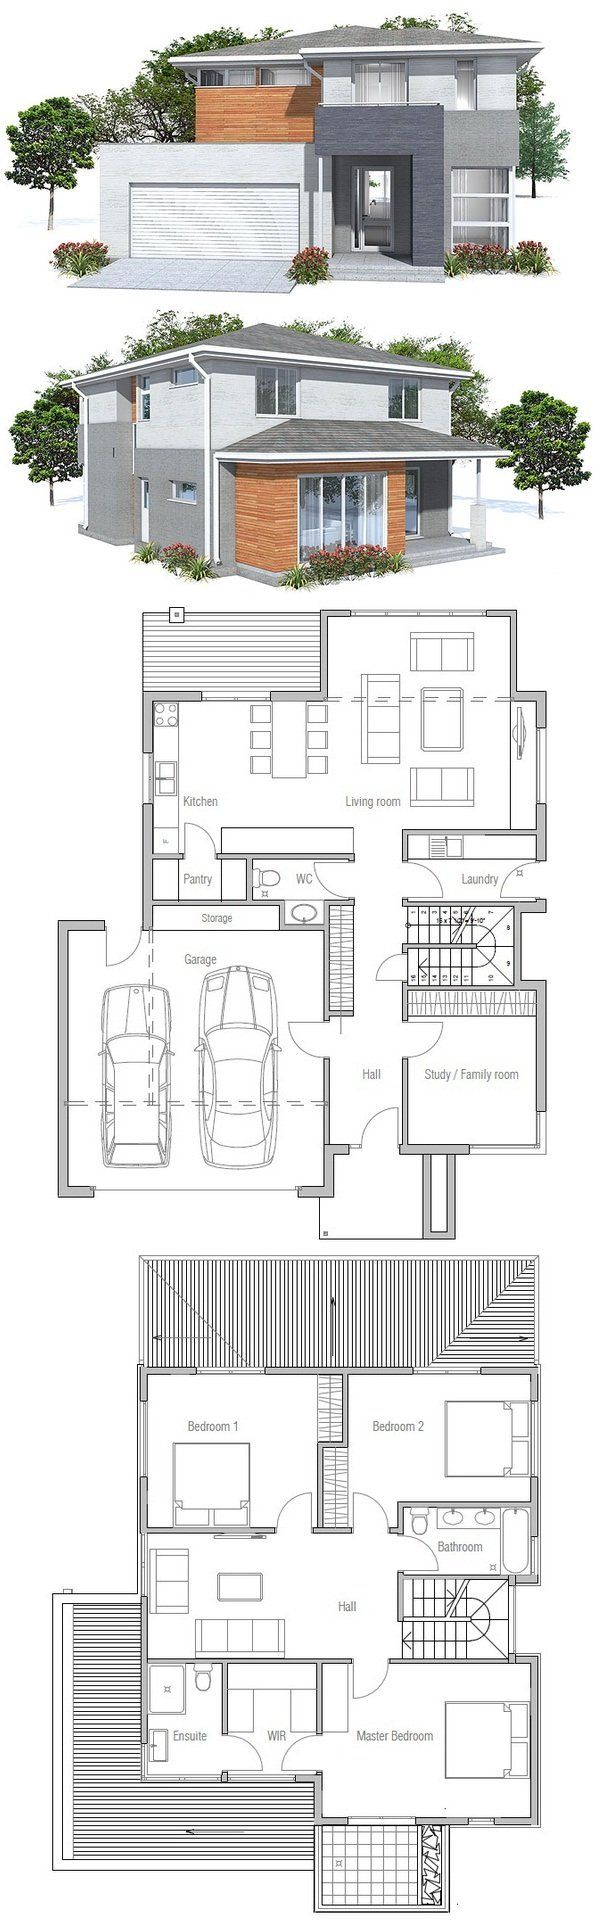 Best 25 modern house plans ideas on pinterest modern for Modern house plans with photos